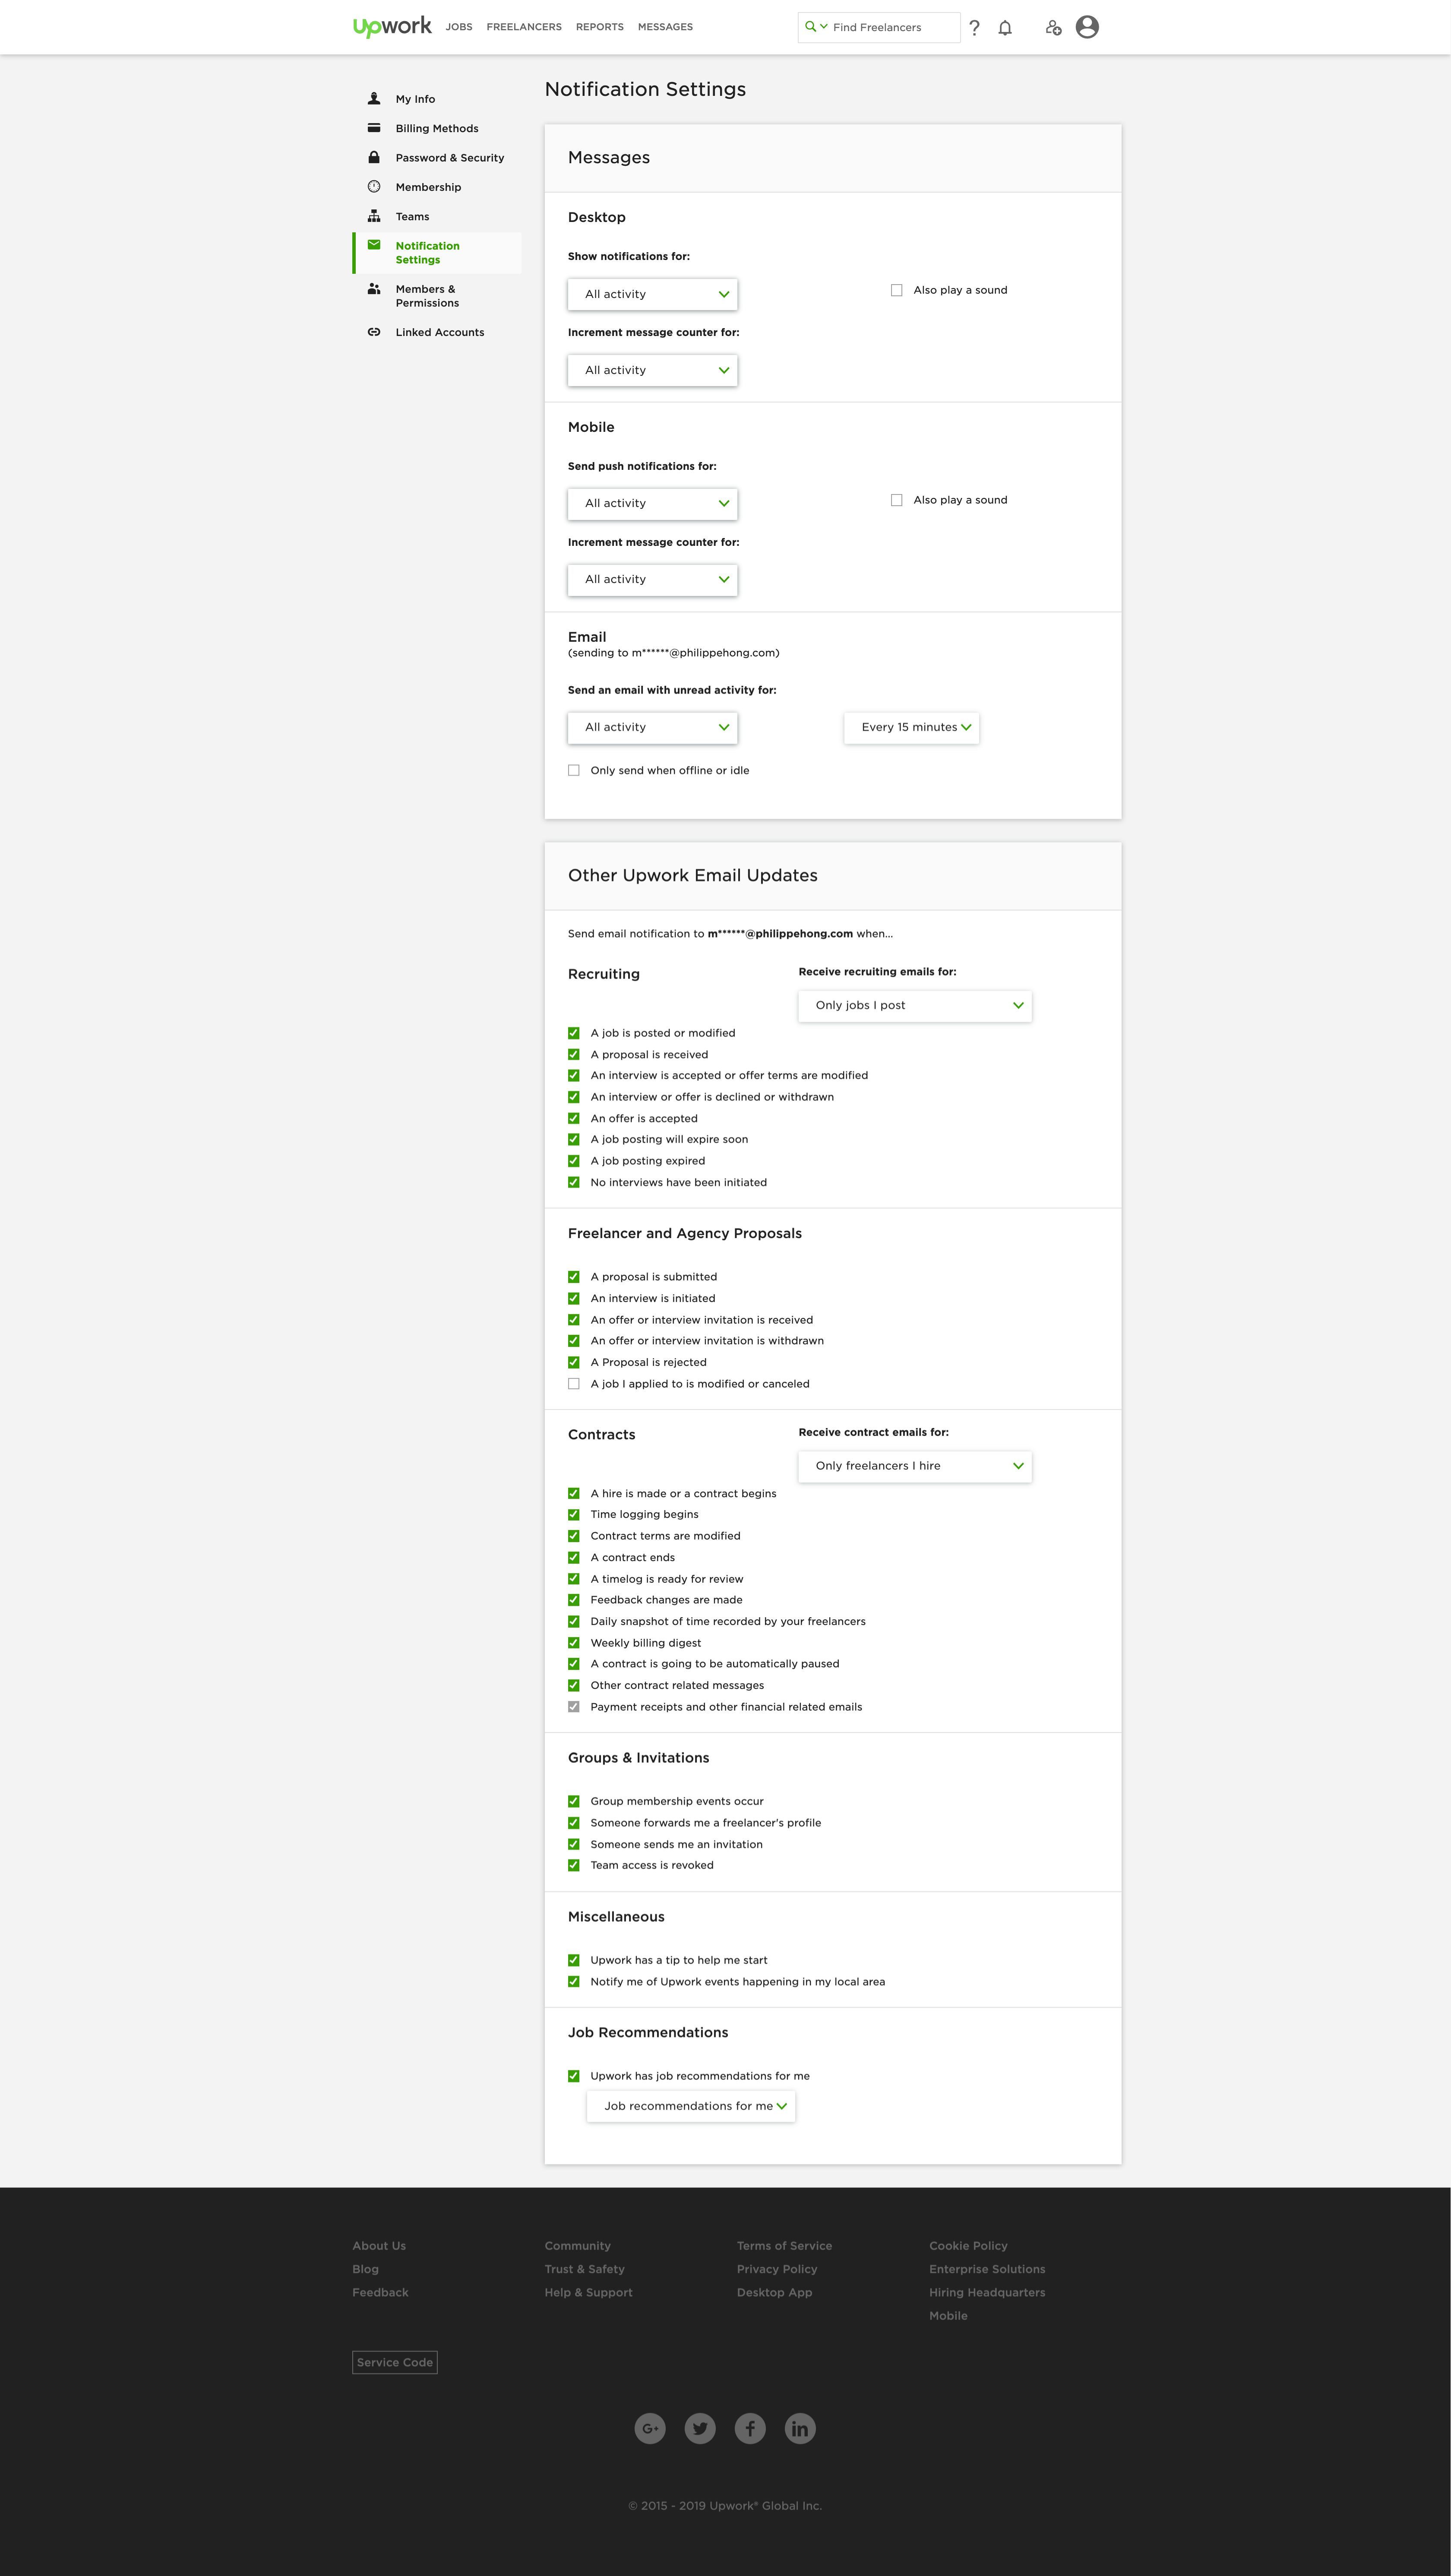 Notification Settings by Upwork